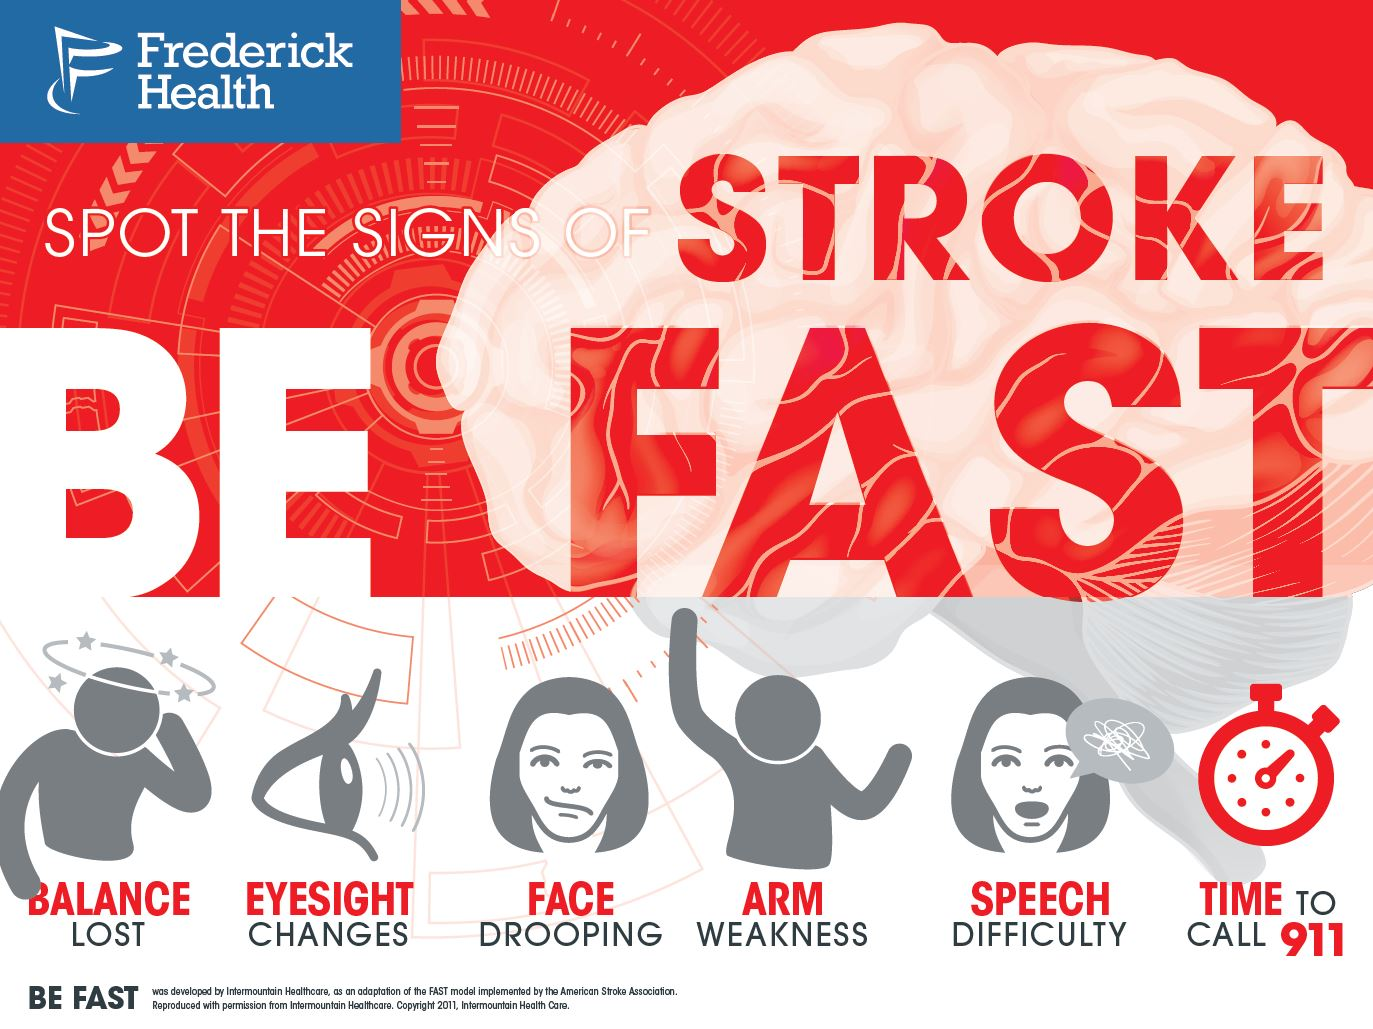 Spot the signs of stroke - BE FAST graphic